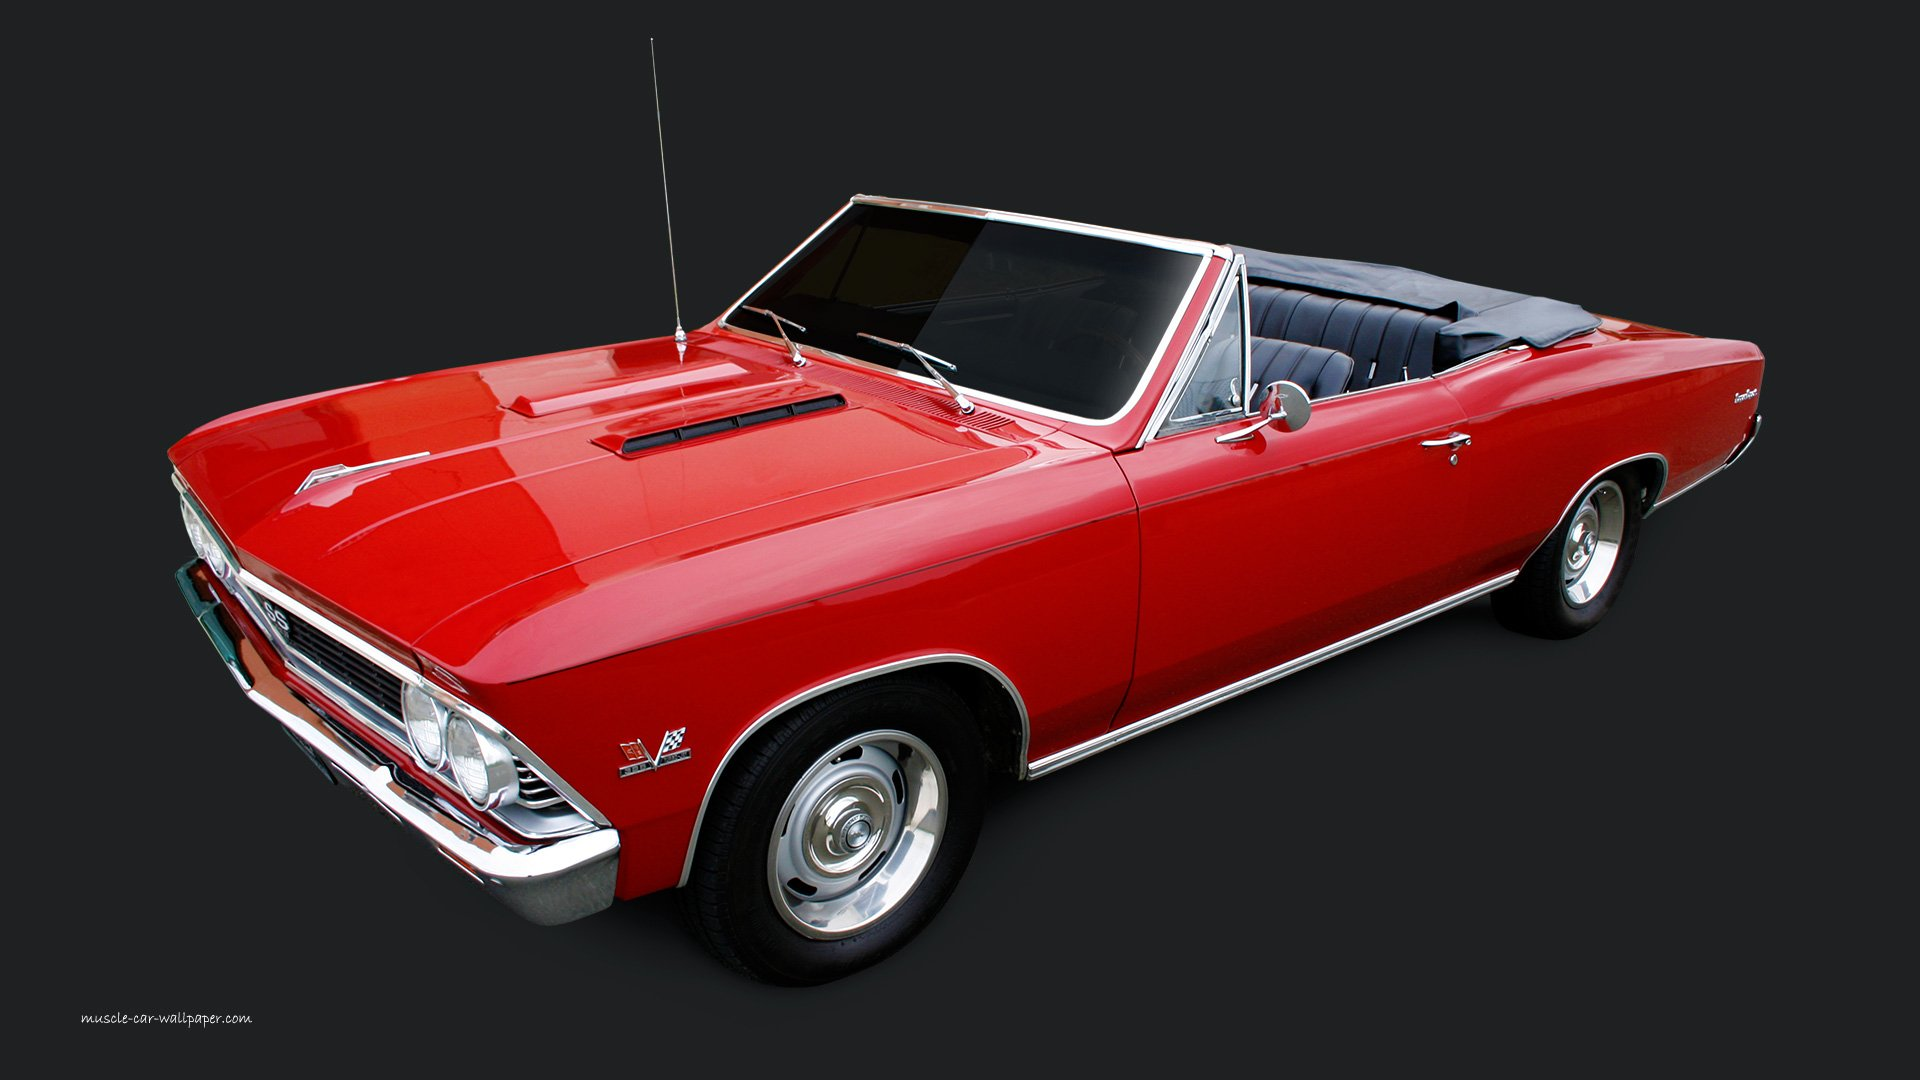 66 Chevelle Ss 396 Yellow Chevelle wallpaper high red 1920x1080